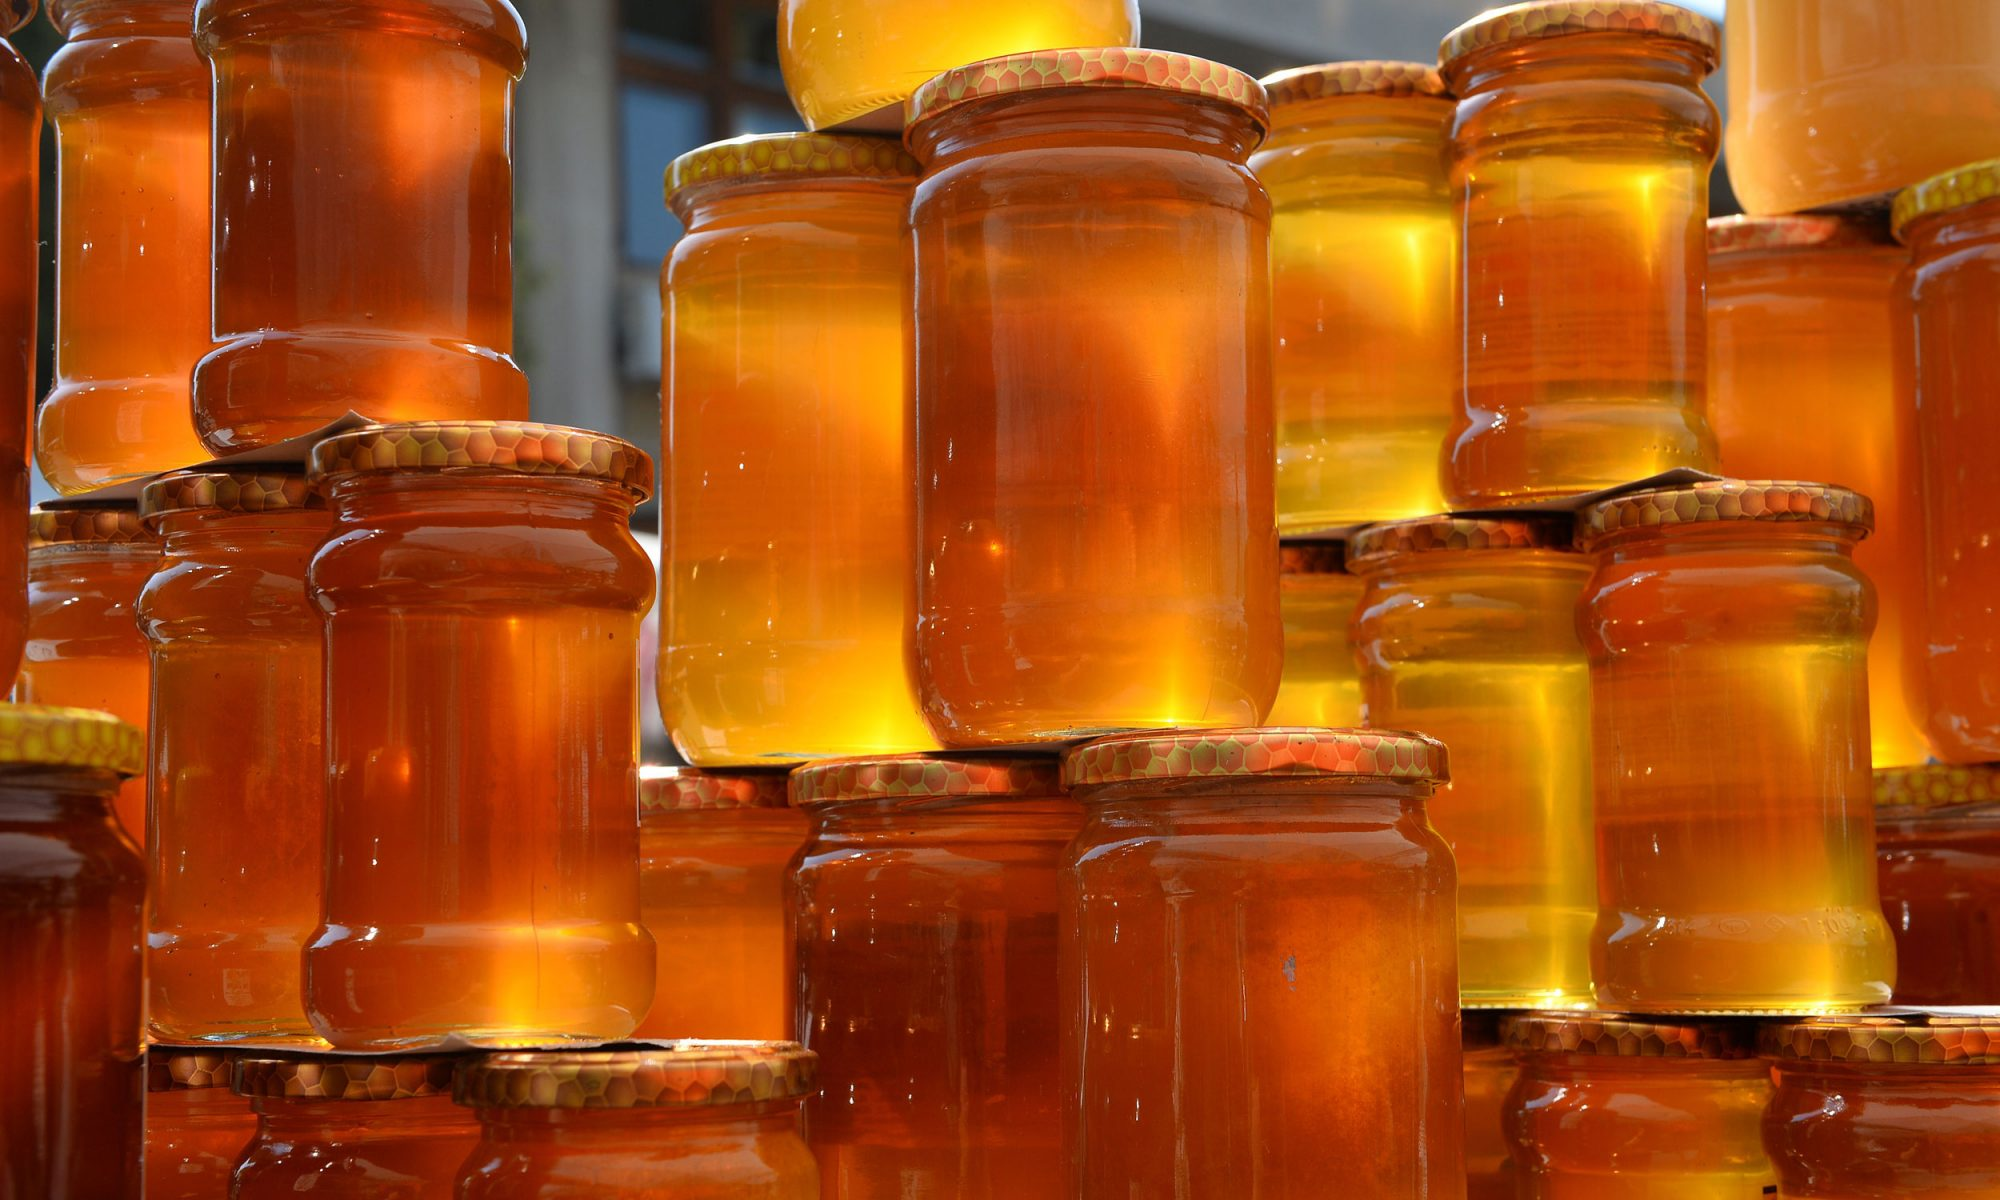 EC: Every Honey Tastes Different, So Eat It for Breakfast Every Day